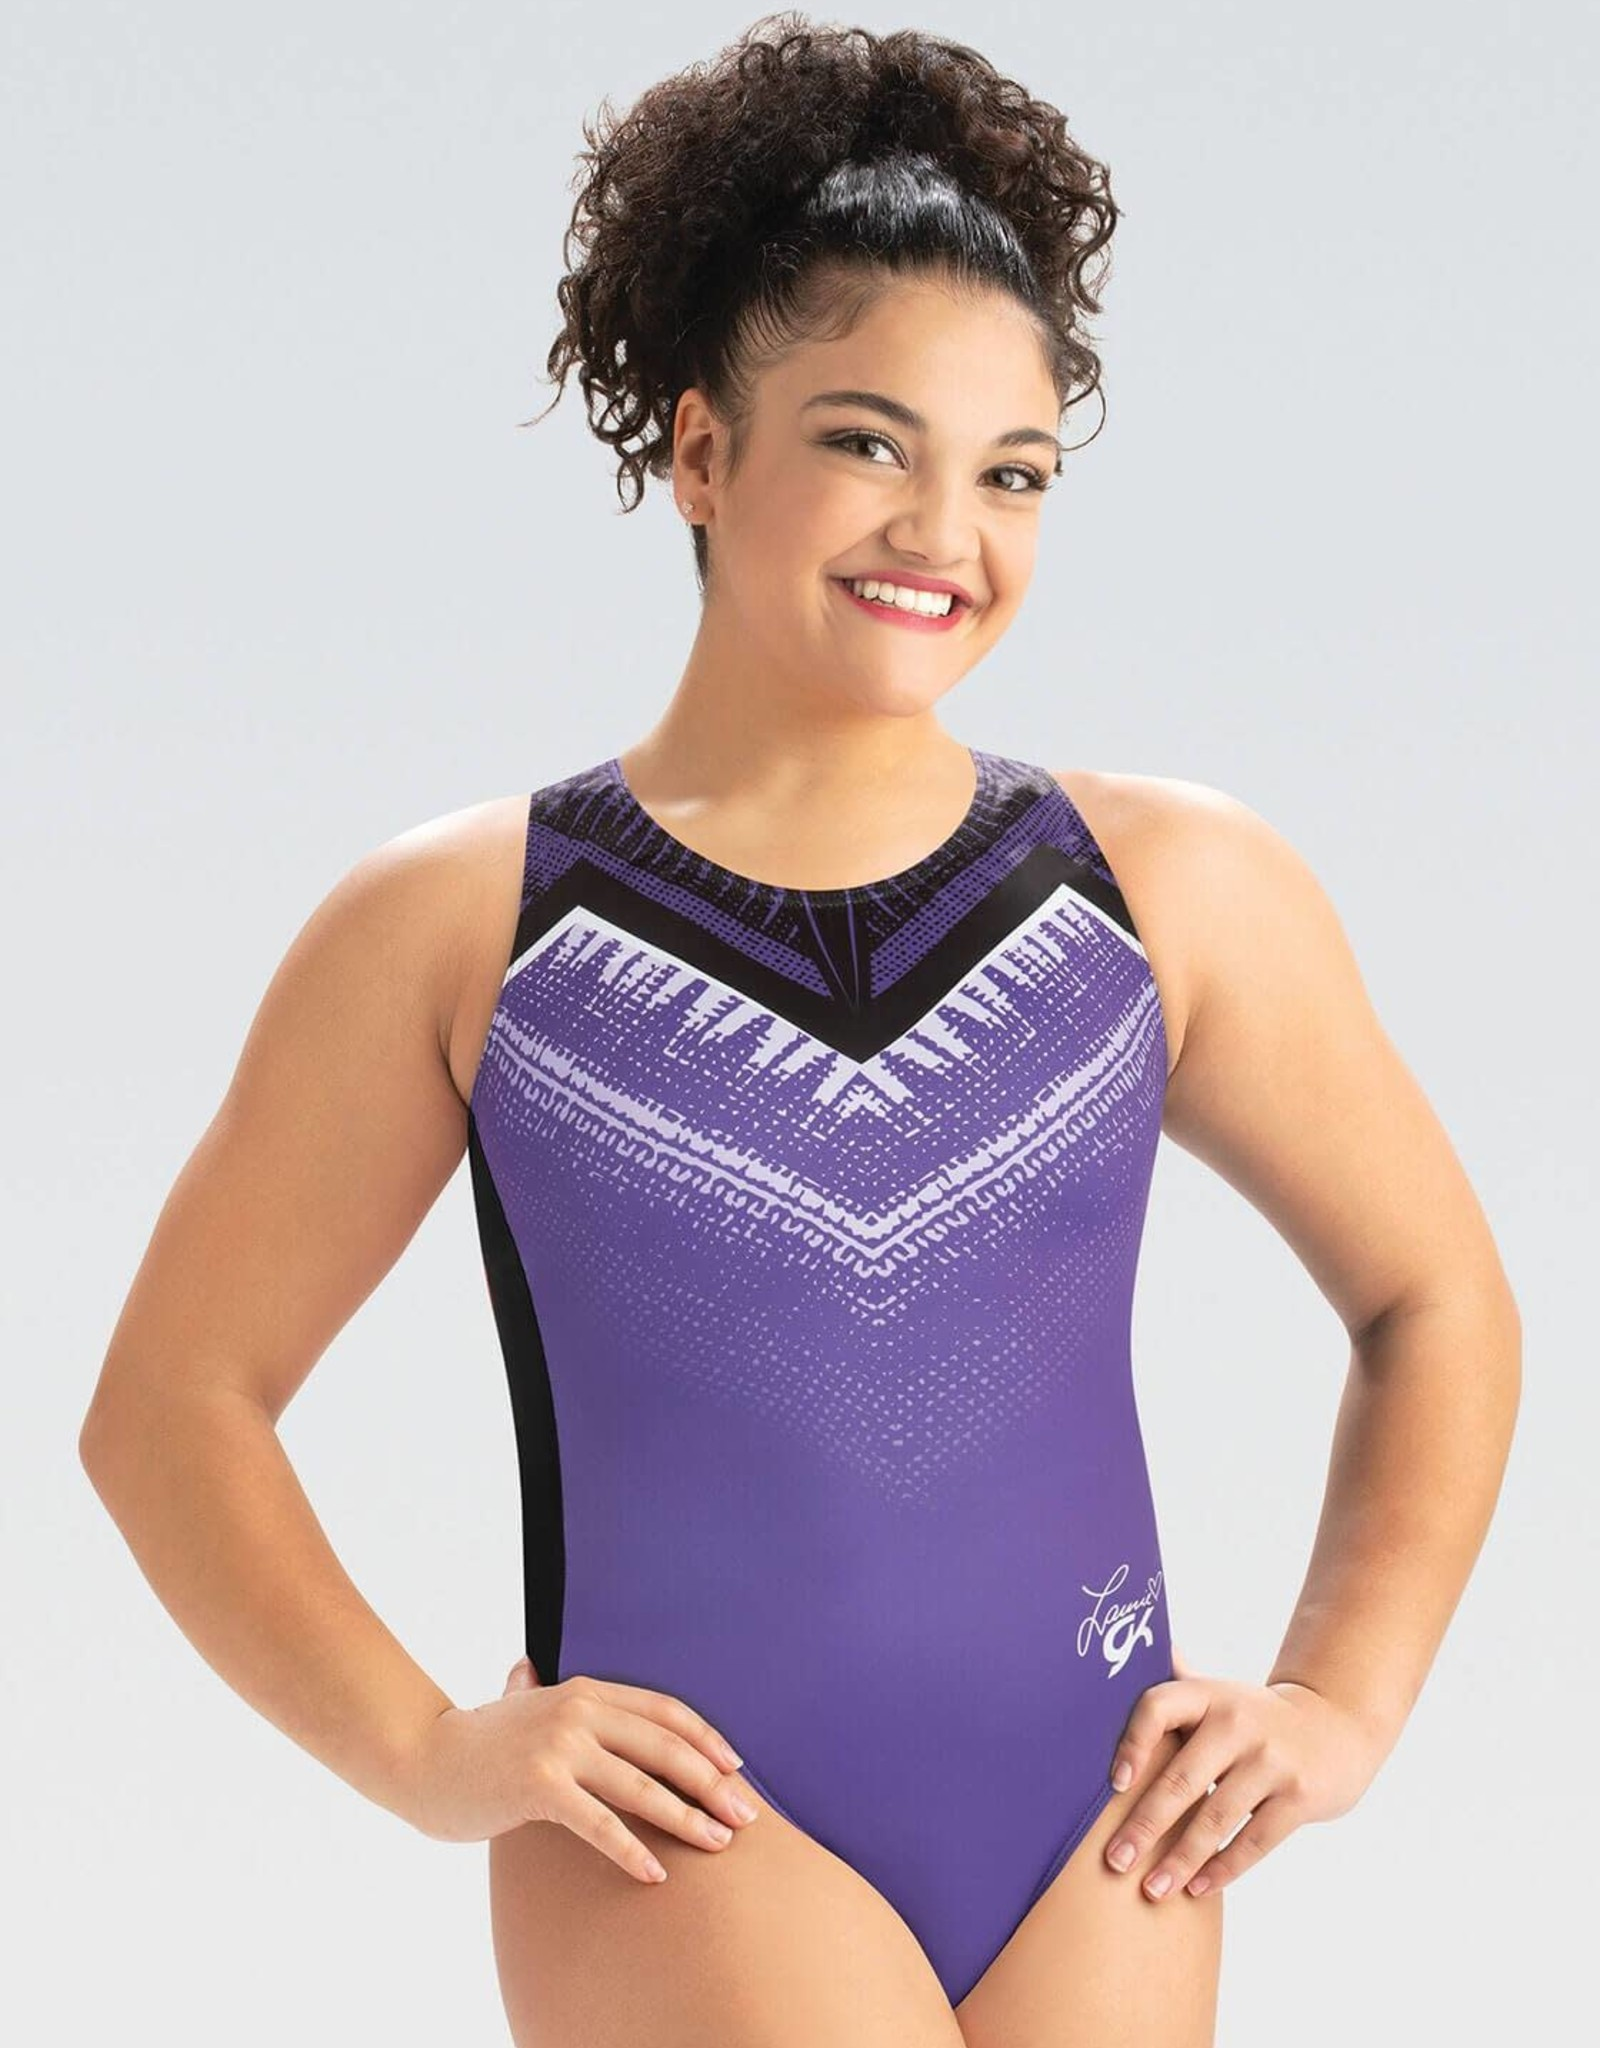 GK Elite E4218-Laurie Hernandez Collection Purple Power Tank Leotard